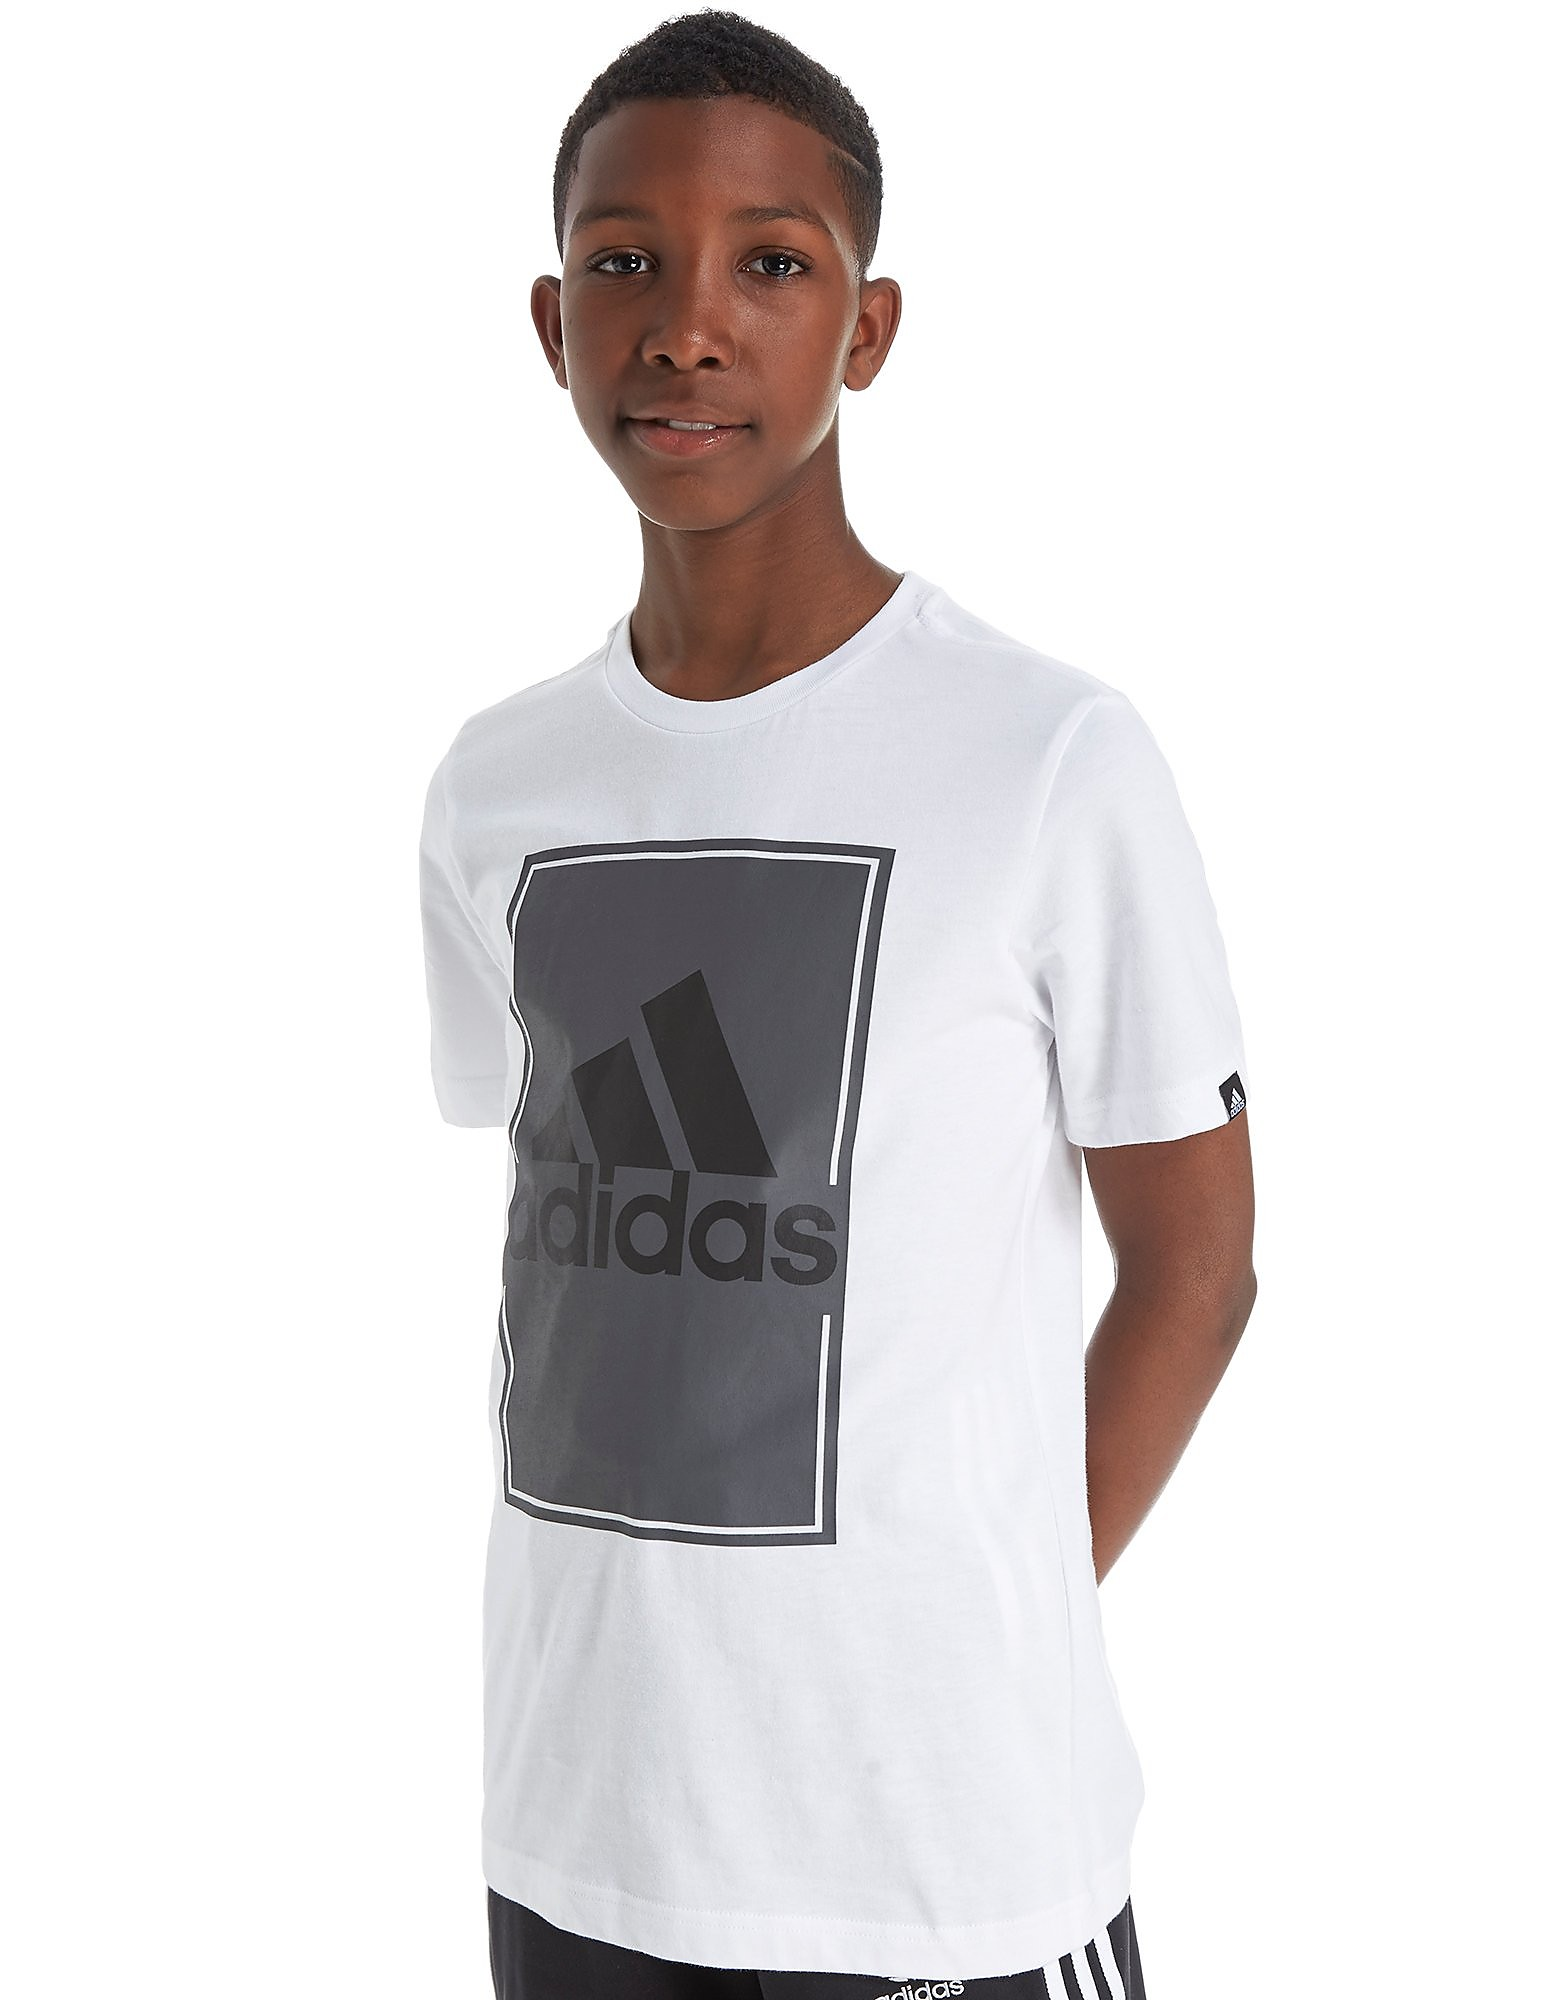 adidas T-shirt Box Junior